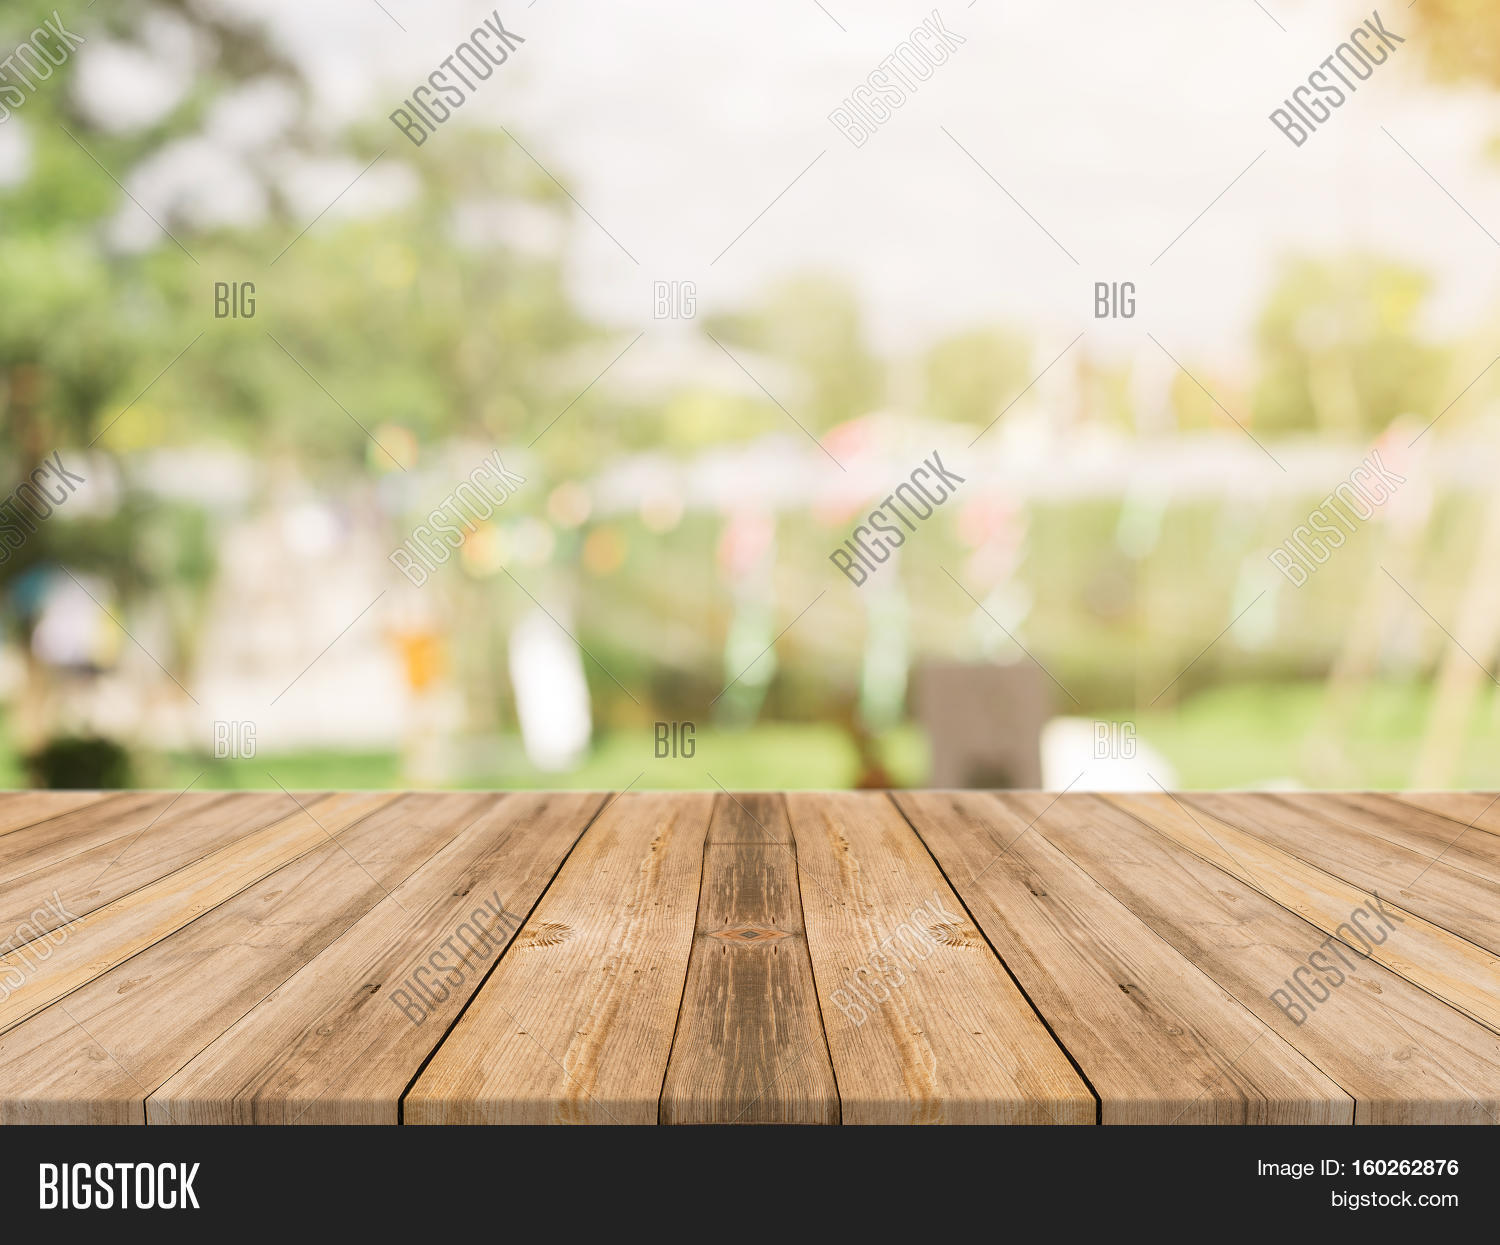 wooden board empty image photo free trial bigstock